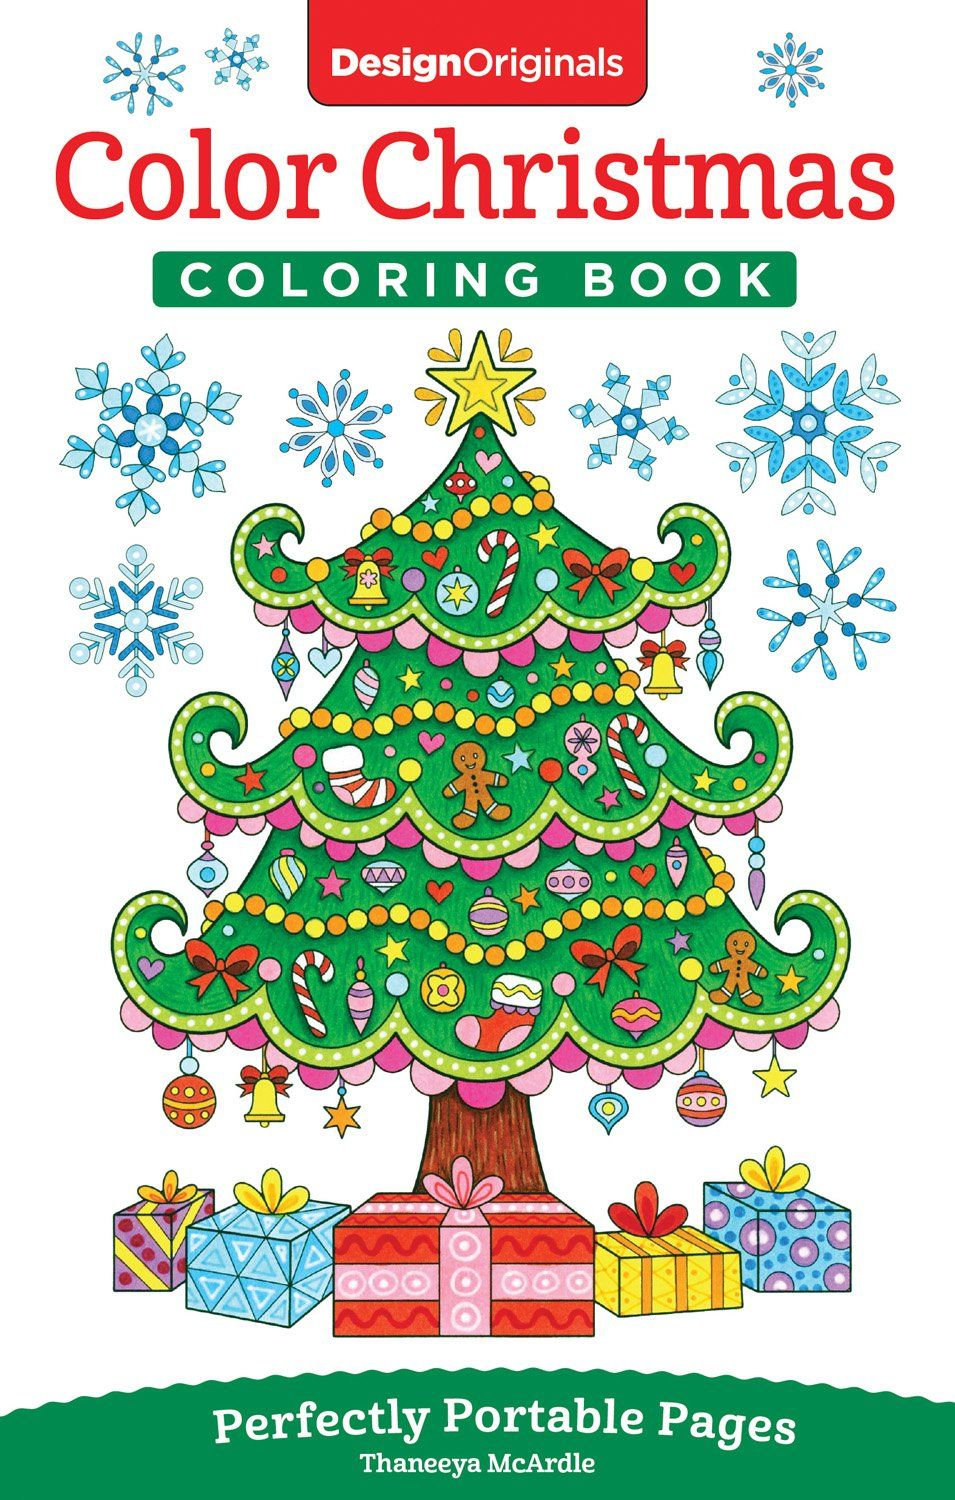 Amazon.com: Color Christmas Coloring Book: Perfectly Portable Pages ...